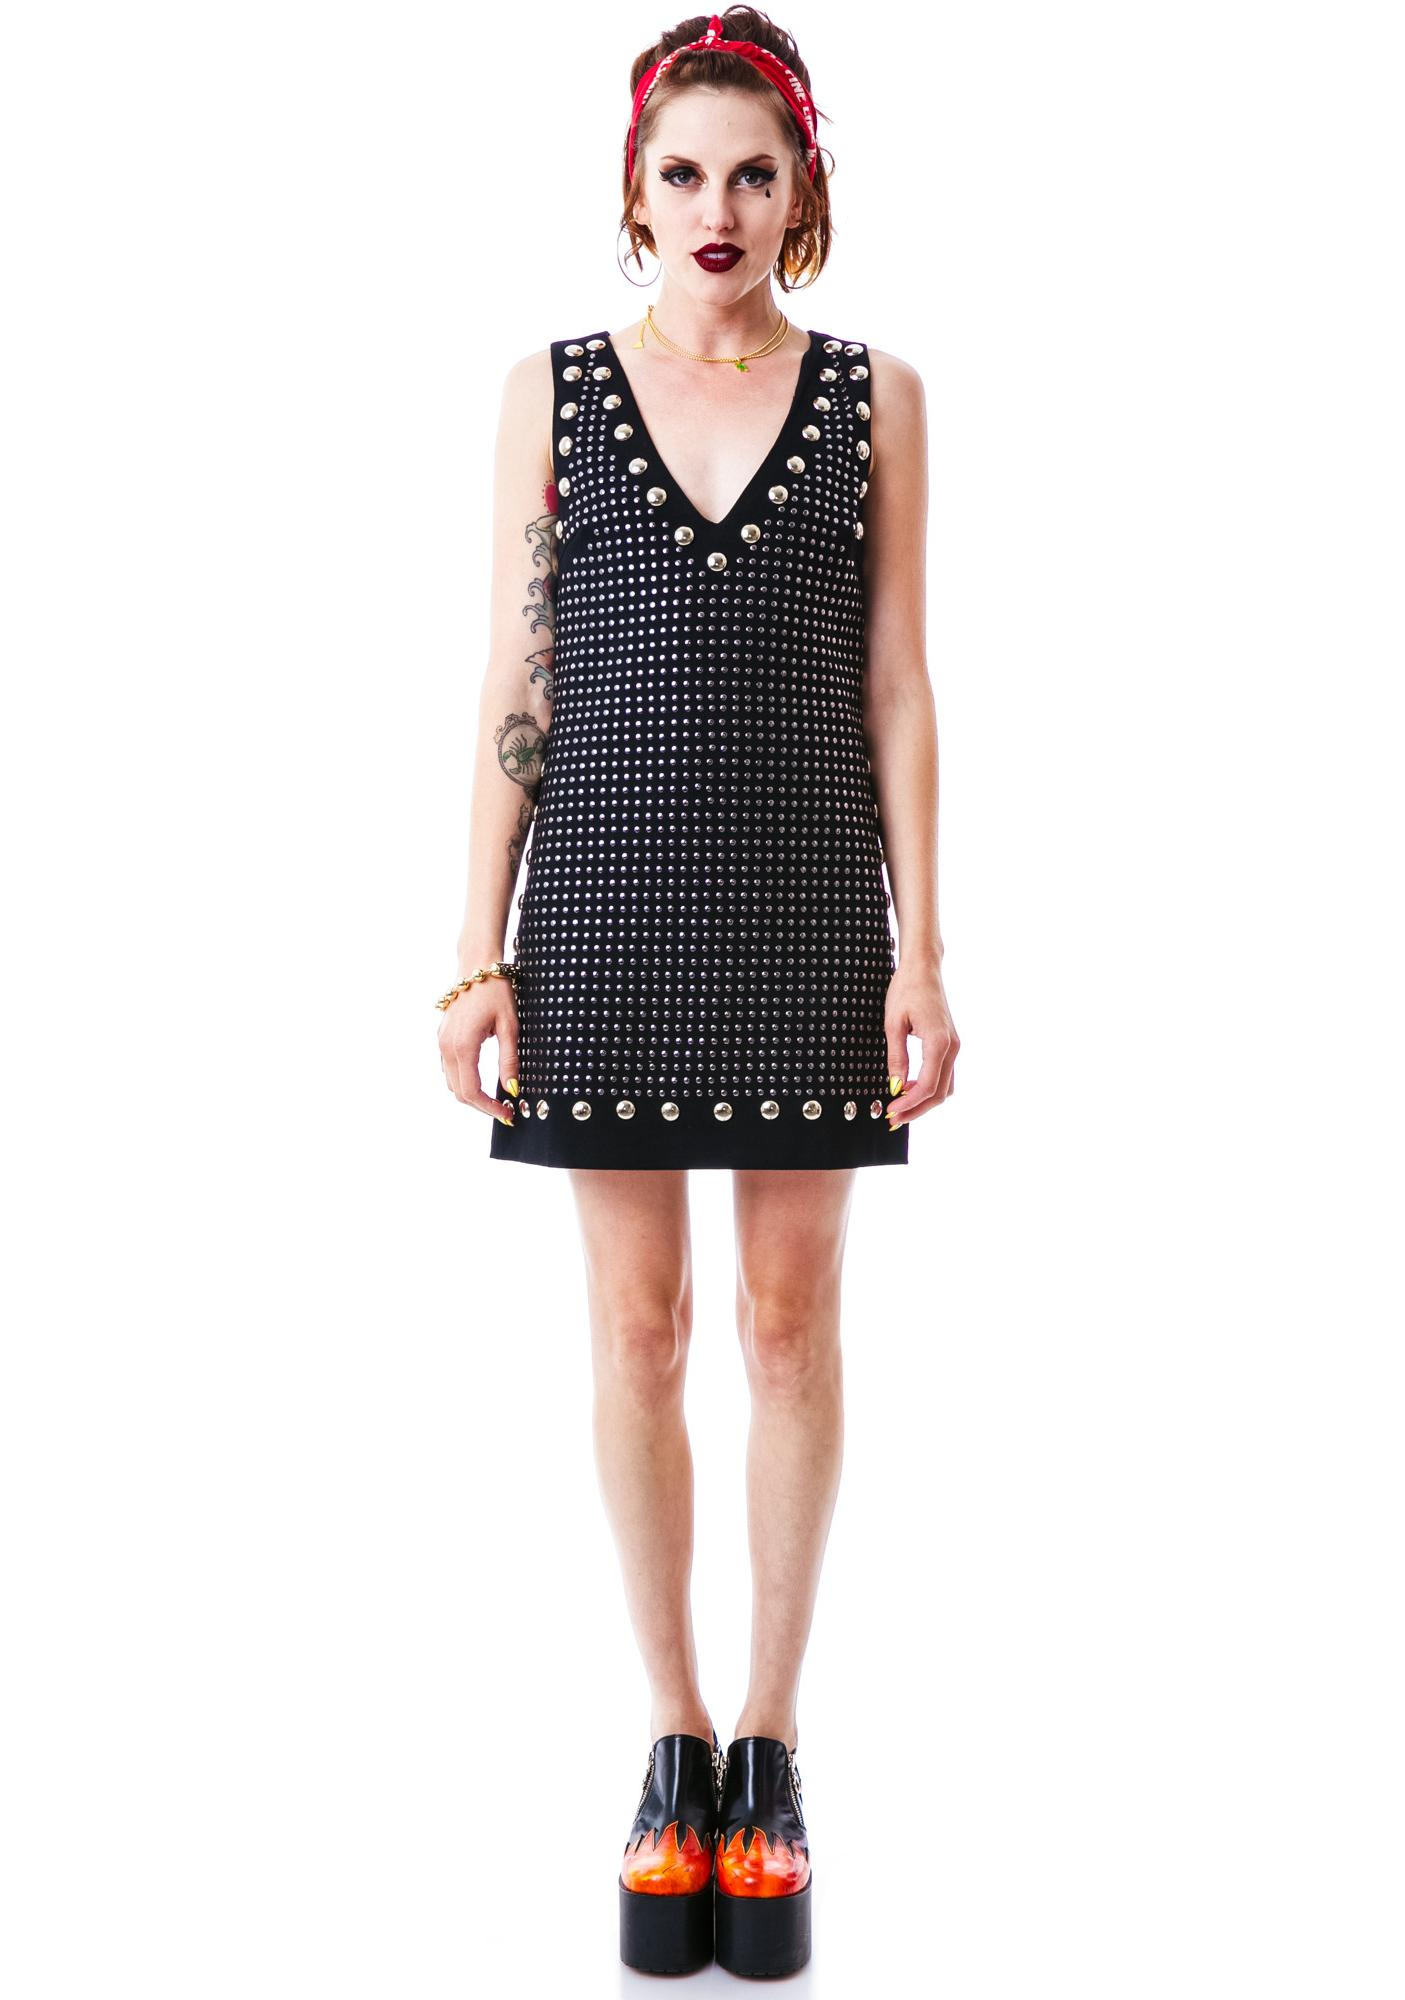 Enter the Night Studded Dress